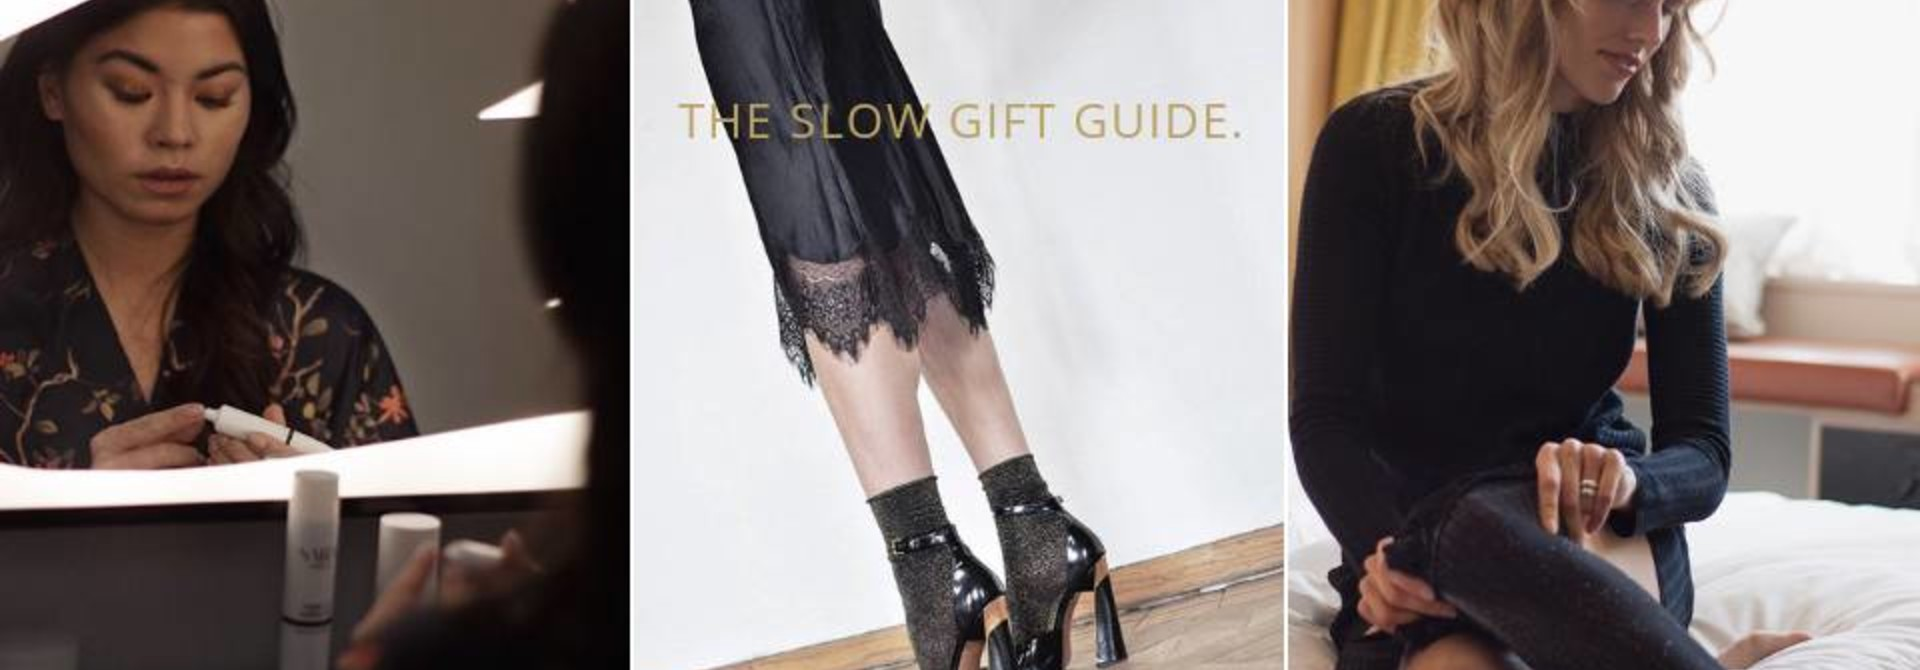 The Slow Gift Guide